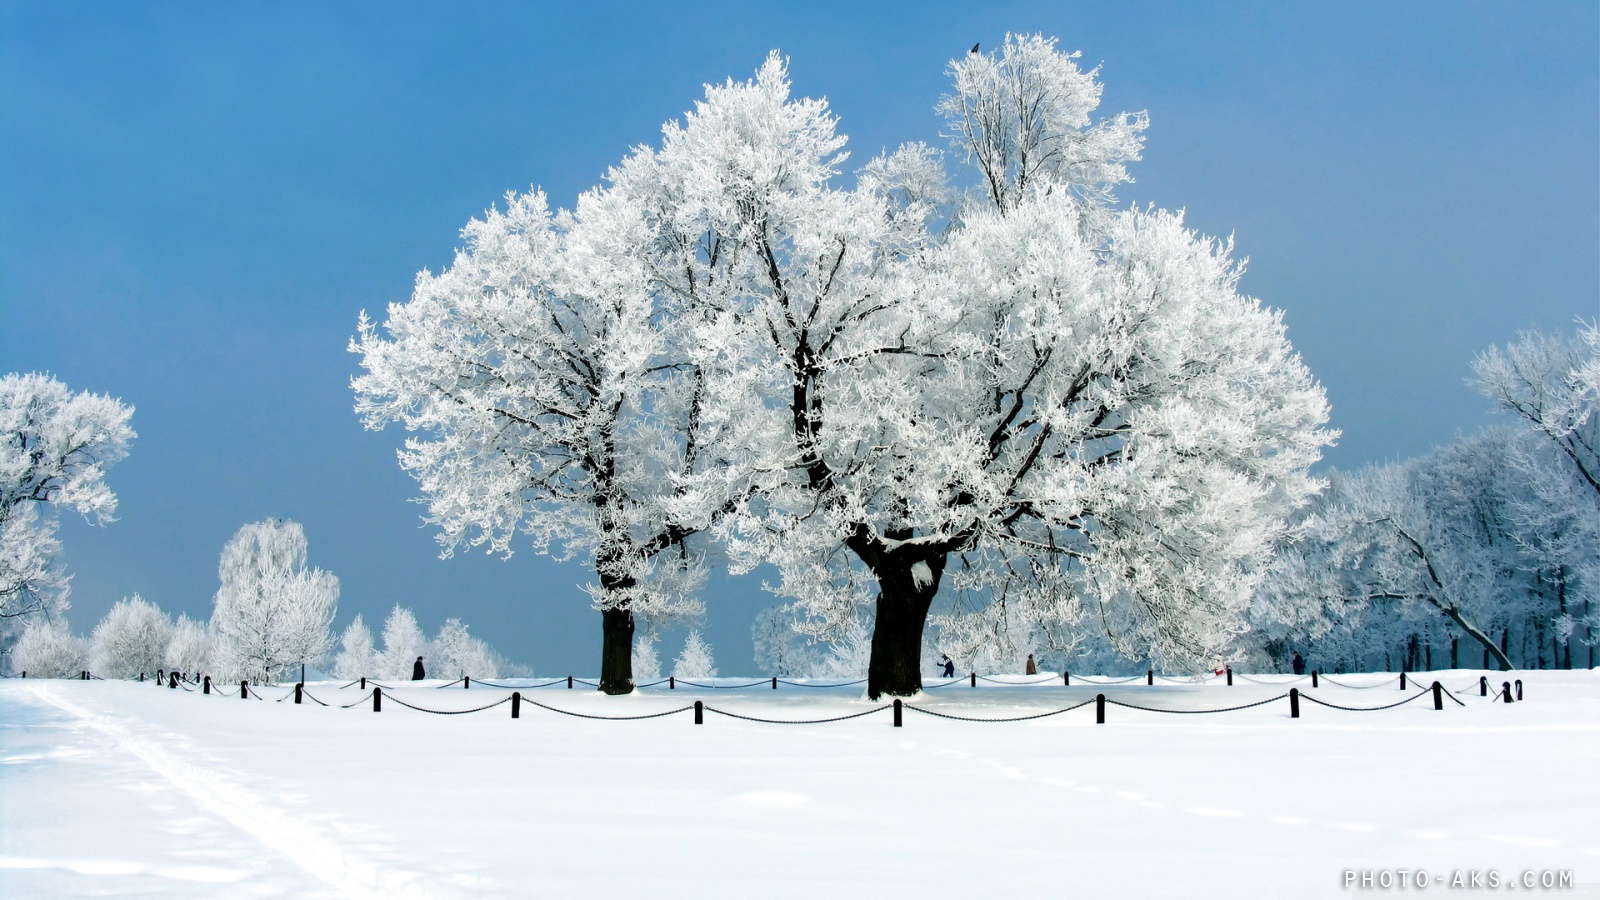 http://pic.photo-aks.com/photo/nature/season/winter/large/winter-wallpaper-photo-aks.jpg